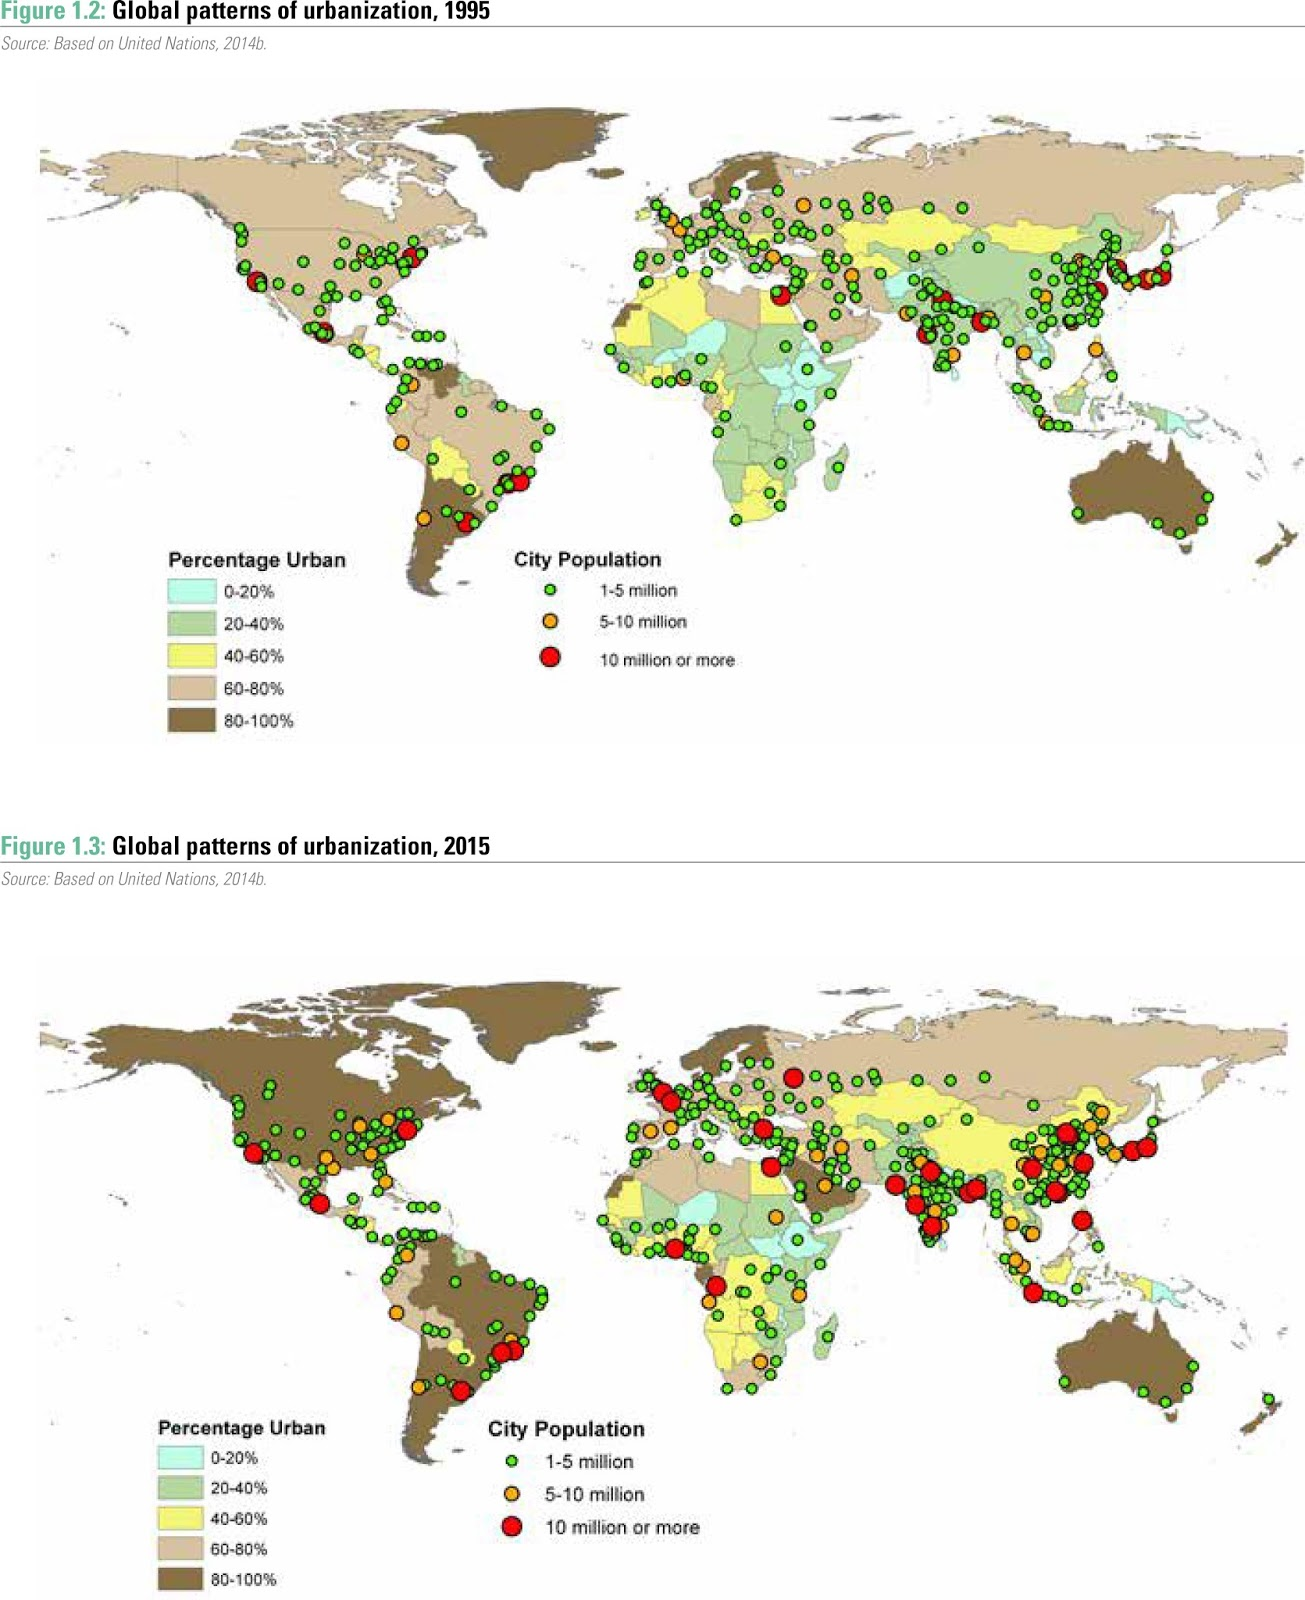 Global patterns of urbanization (1995 - 2015)